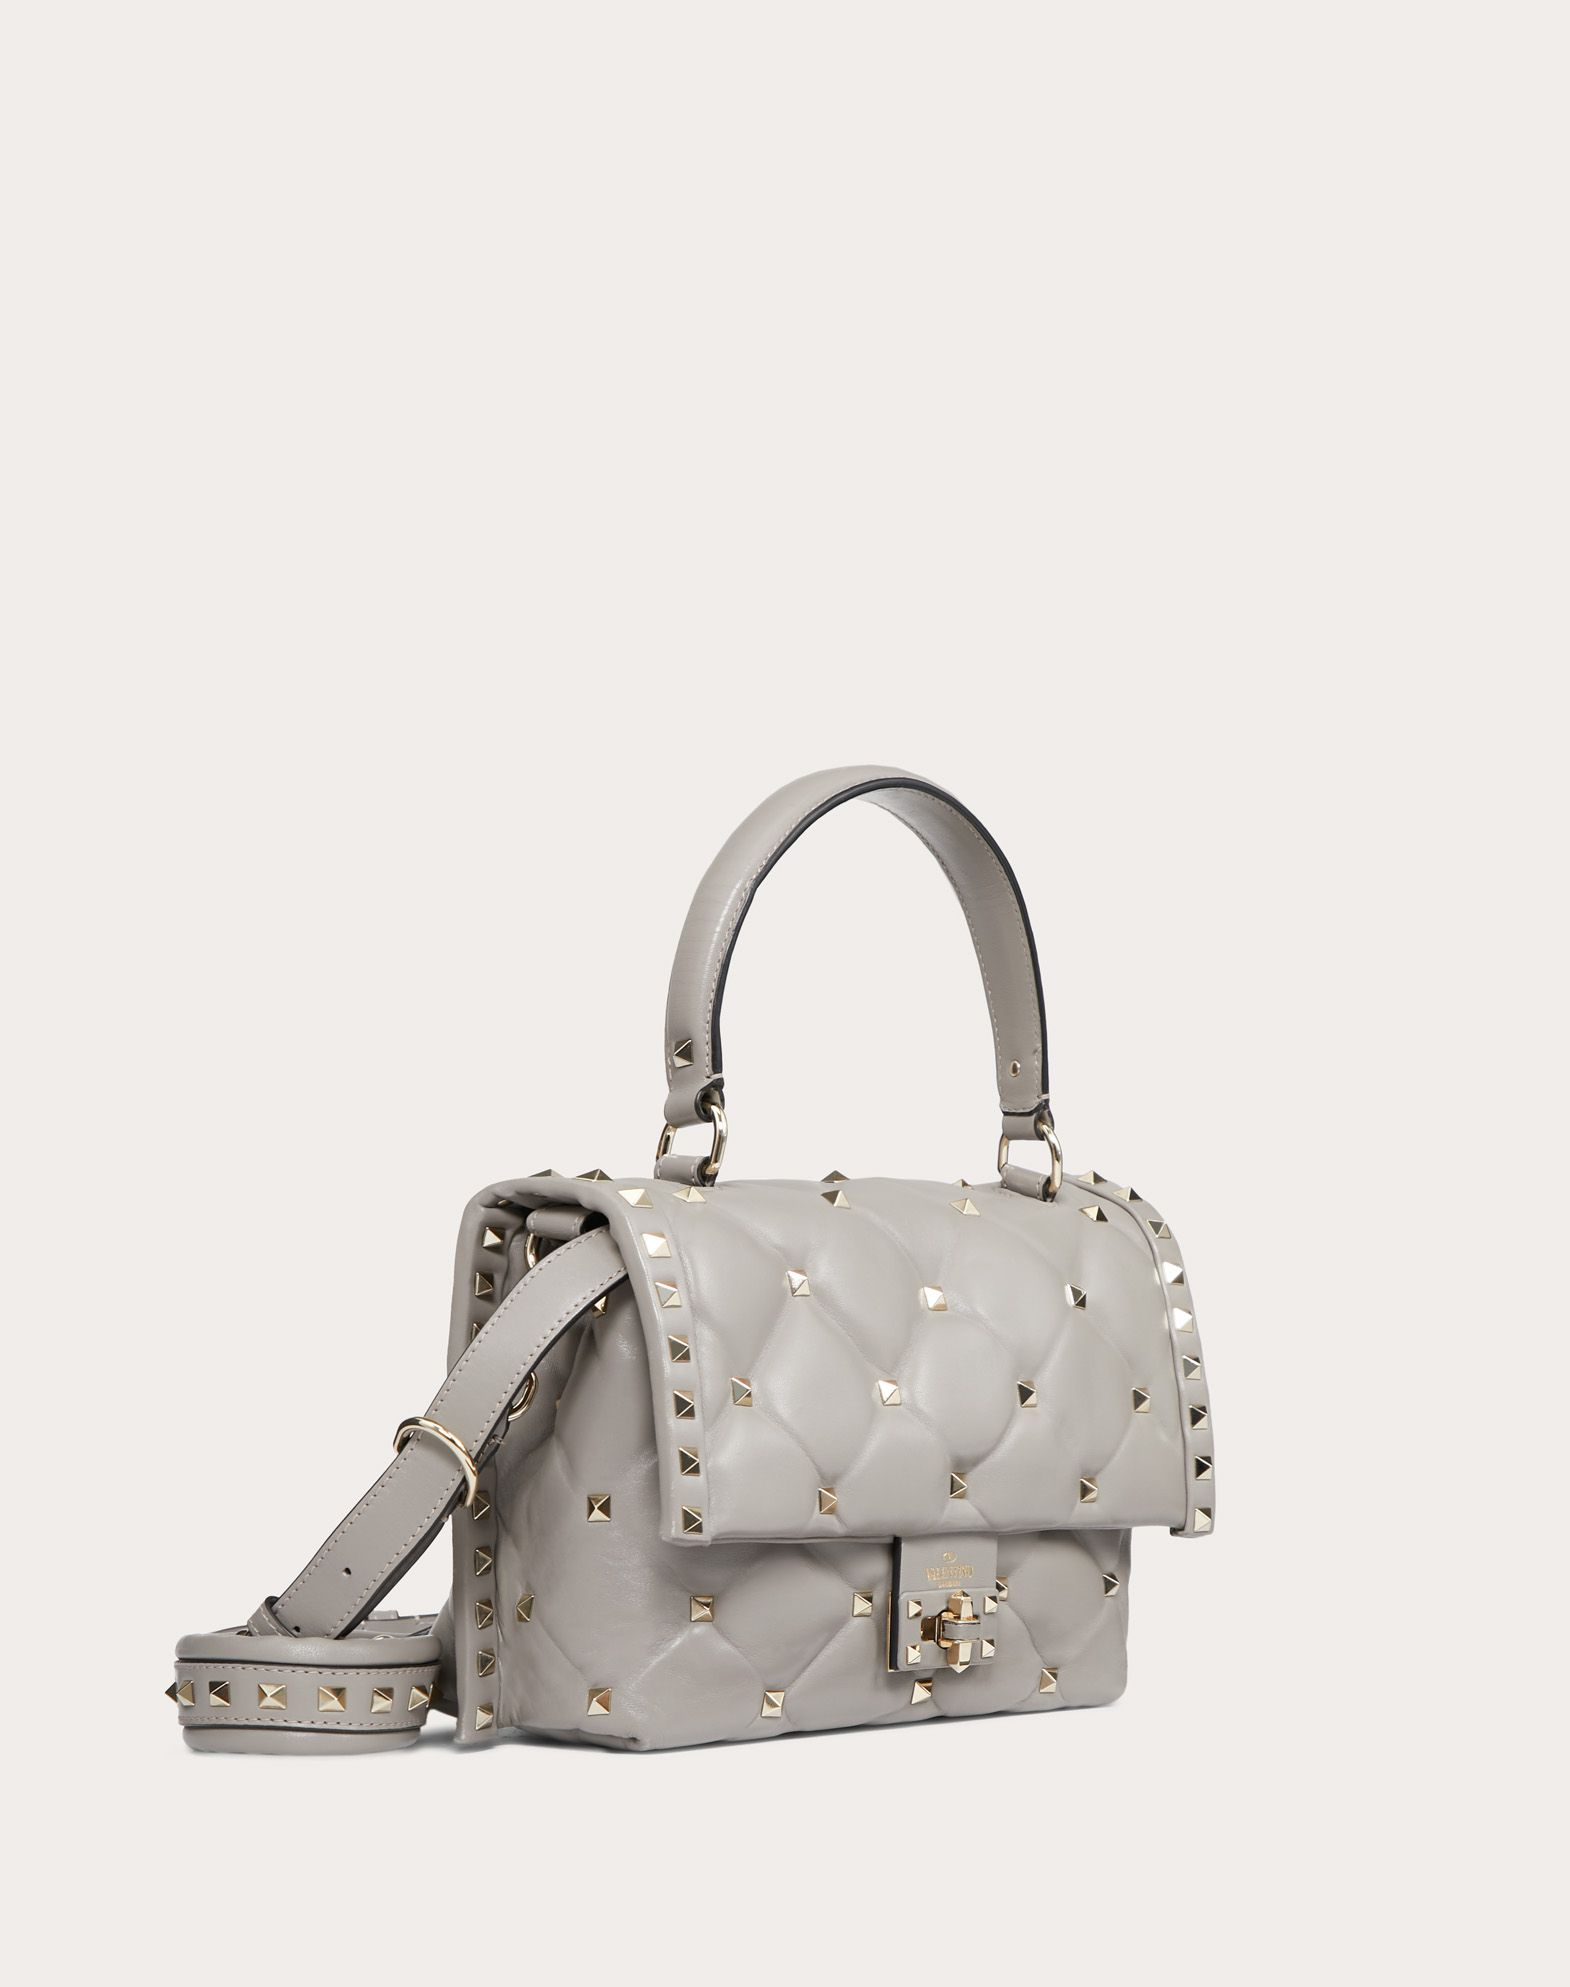 VALENTINO GARAVANI Candystud Top Handle Bag HANDBAG D r